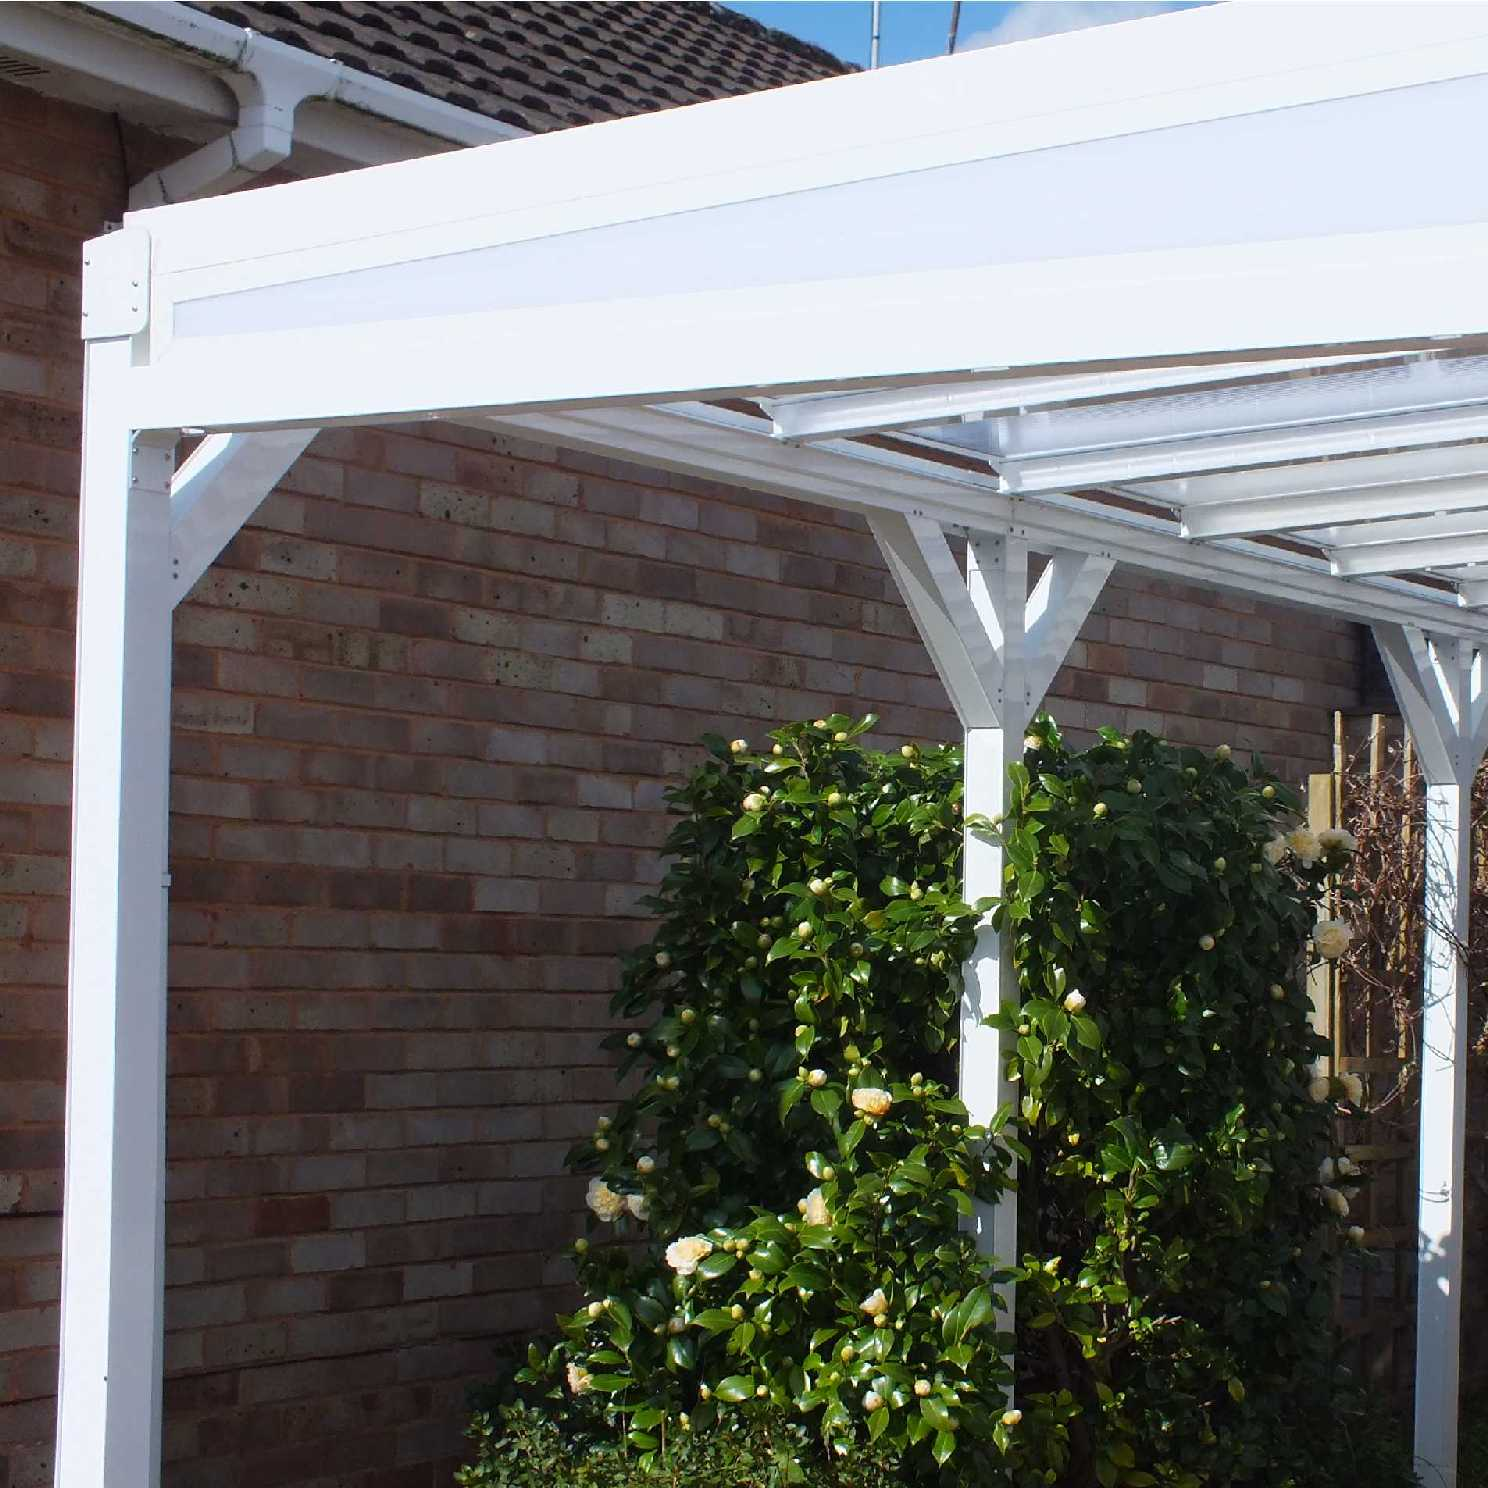 Omega Smart Lean-To Canopy with 16mm Polycarbonate Glazing - 3.5m (W) x 4.0m (P), (3) Supporting Posts from Omega Build